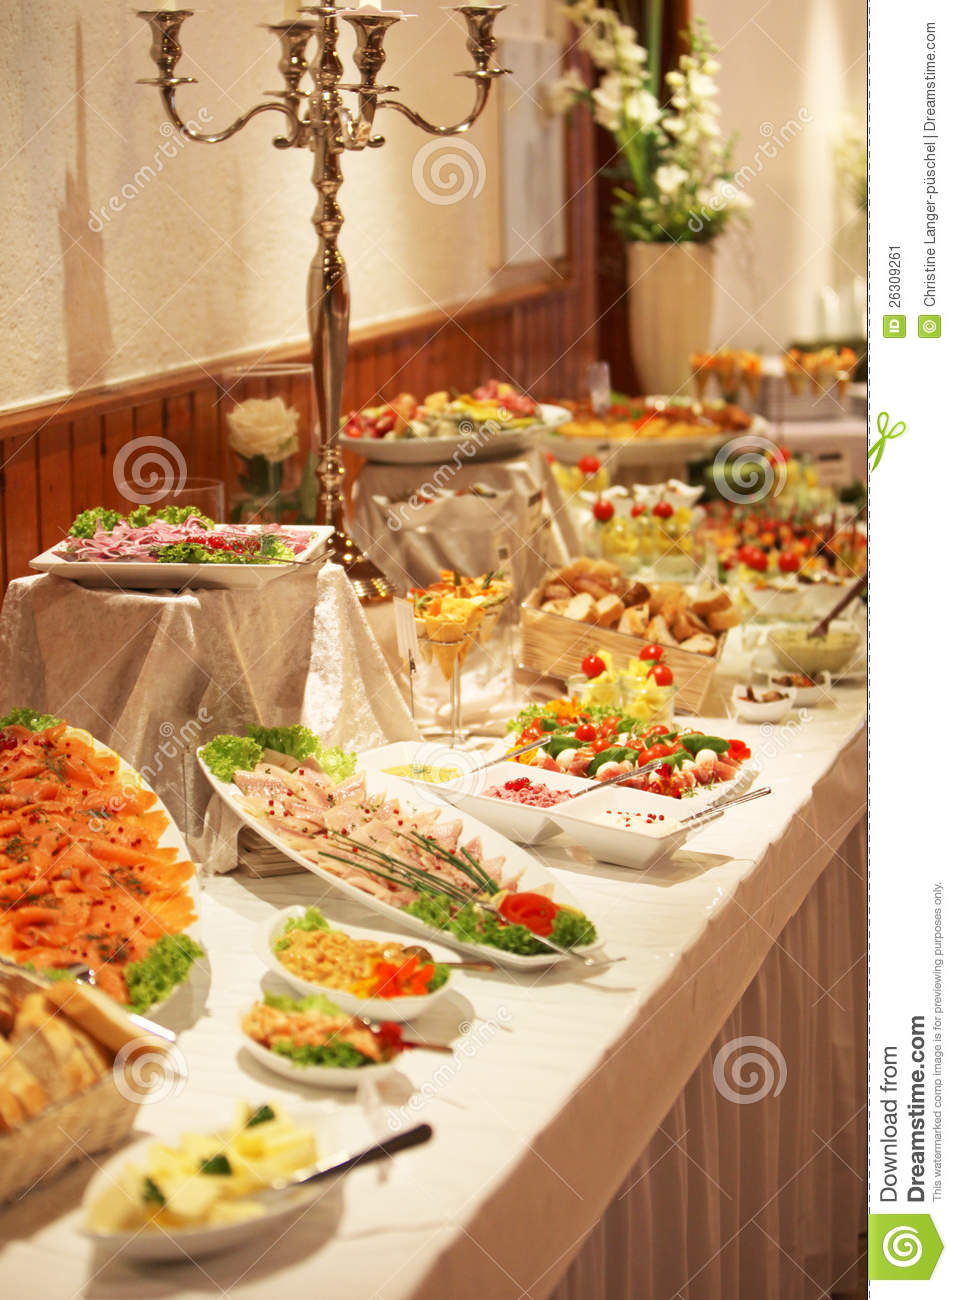 Cold buffet display stock image Image of buffet catered  26309261